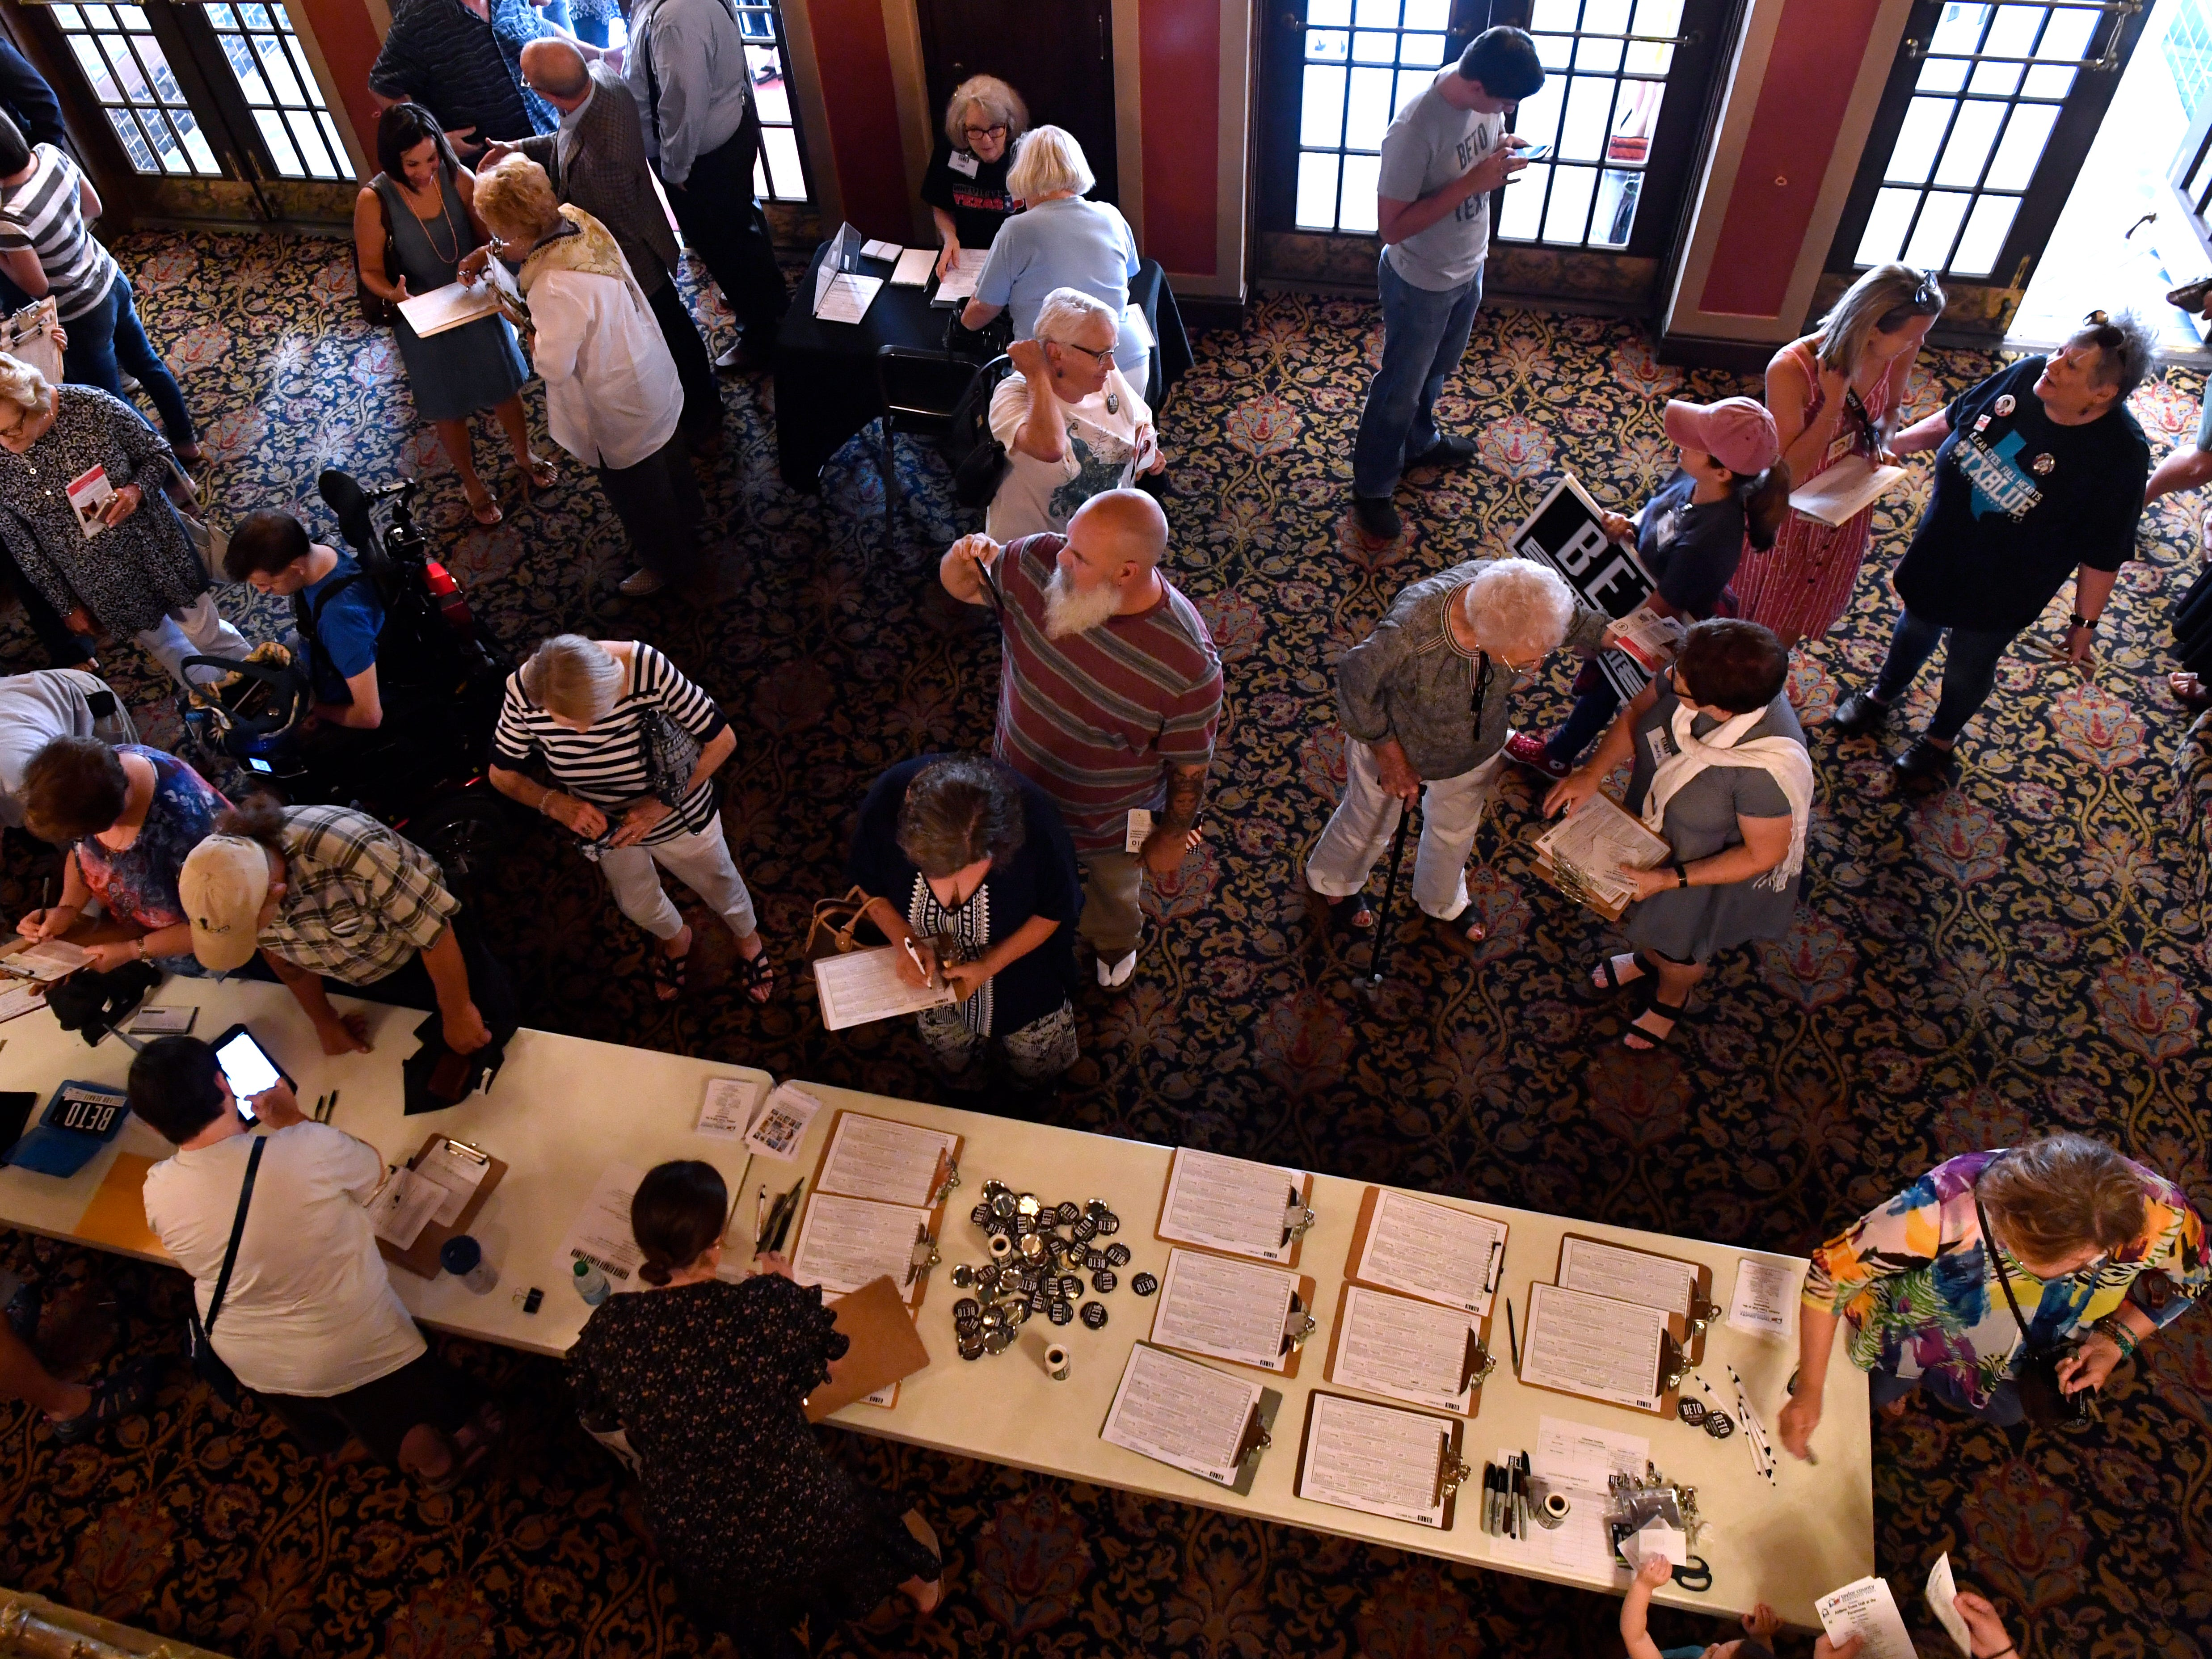 Attendees and campaign workers mingle in the lobby of the Paramount Theatre Thursday August 2, 2018. Five Democratic candidates spoke to a crowd of nearly 800 people during a town hall meeting which included U.S. Senate hopeful Beto O'Rourke.